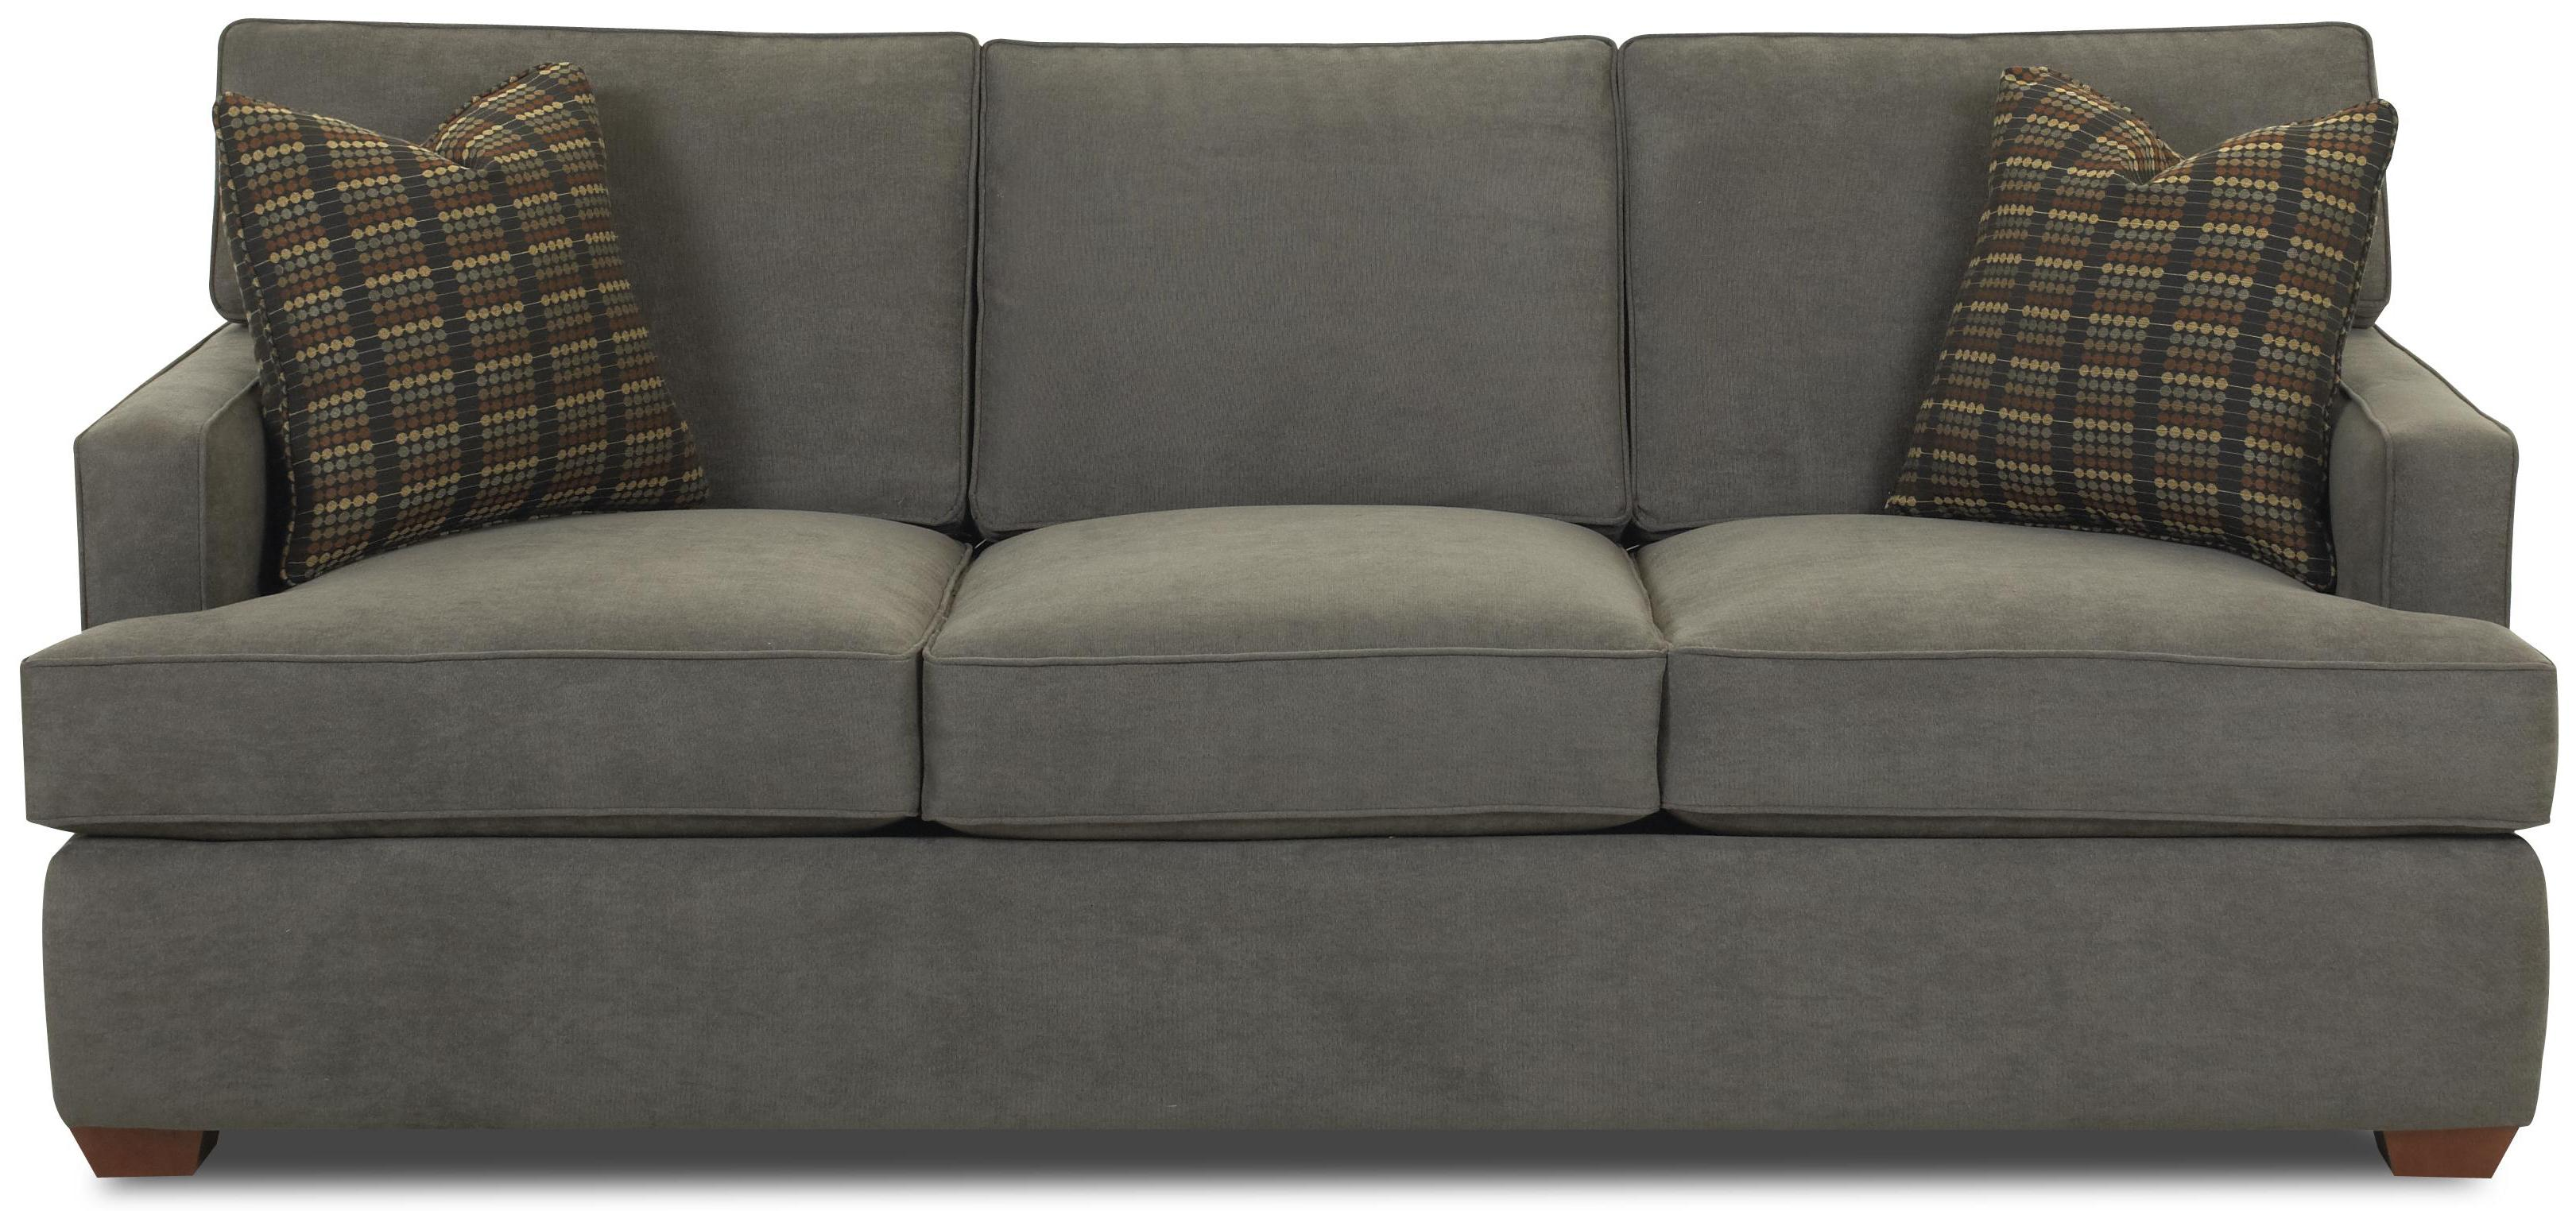 Loomis Innerspring Queen Sofa Sleeper by Klaussner at Northeast Factory Direct